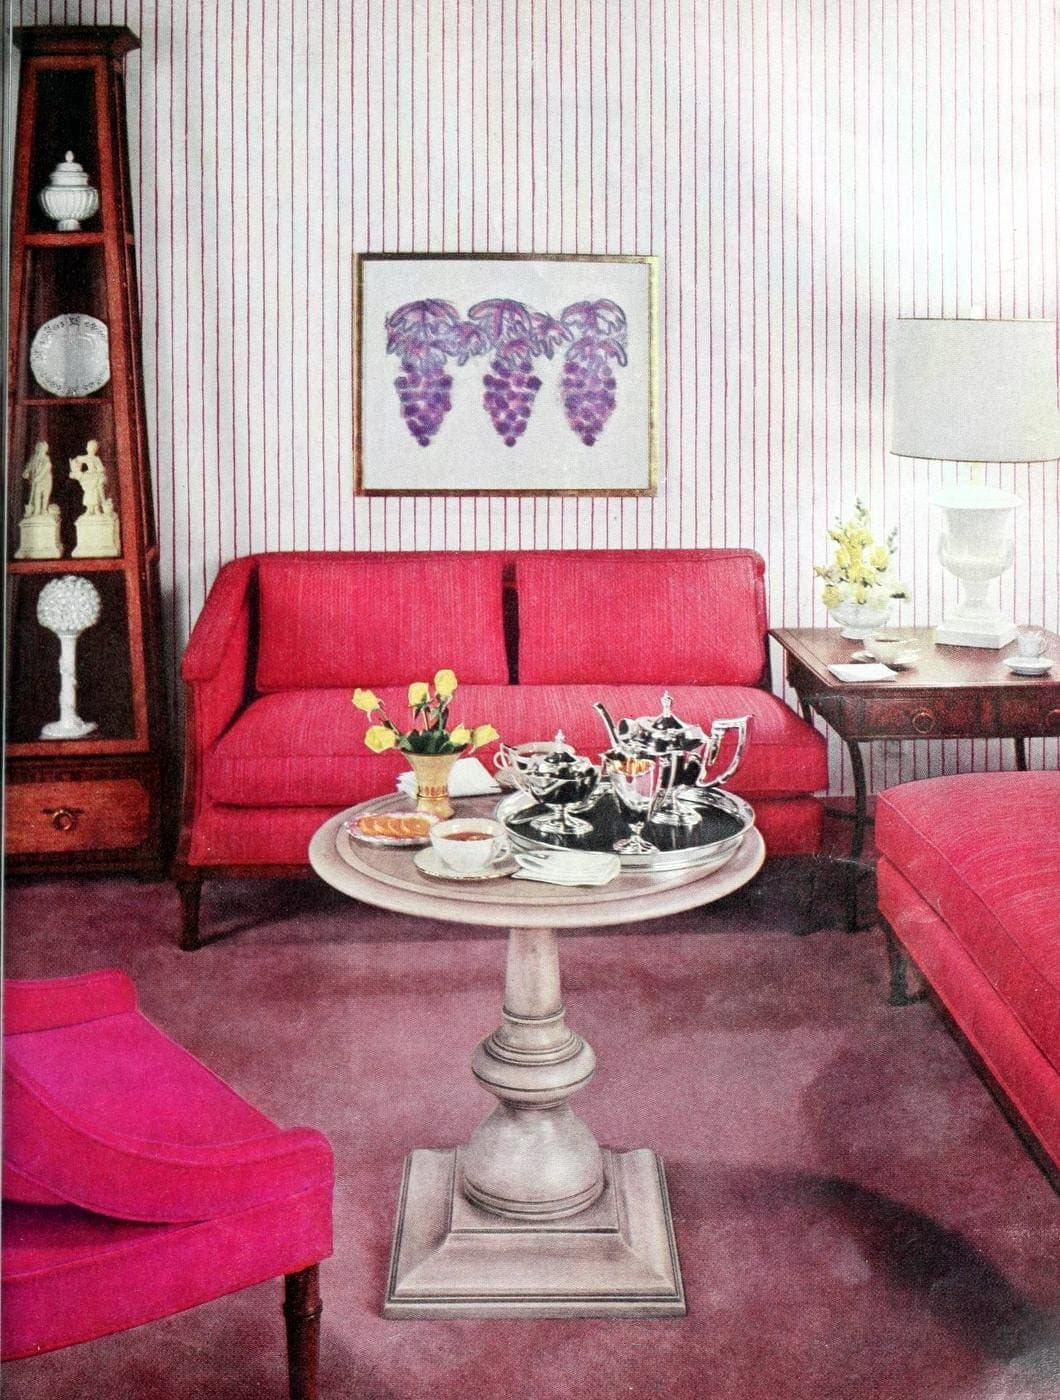 Home decor from 1959 - Coffee table and couches